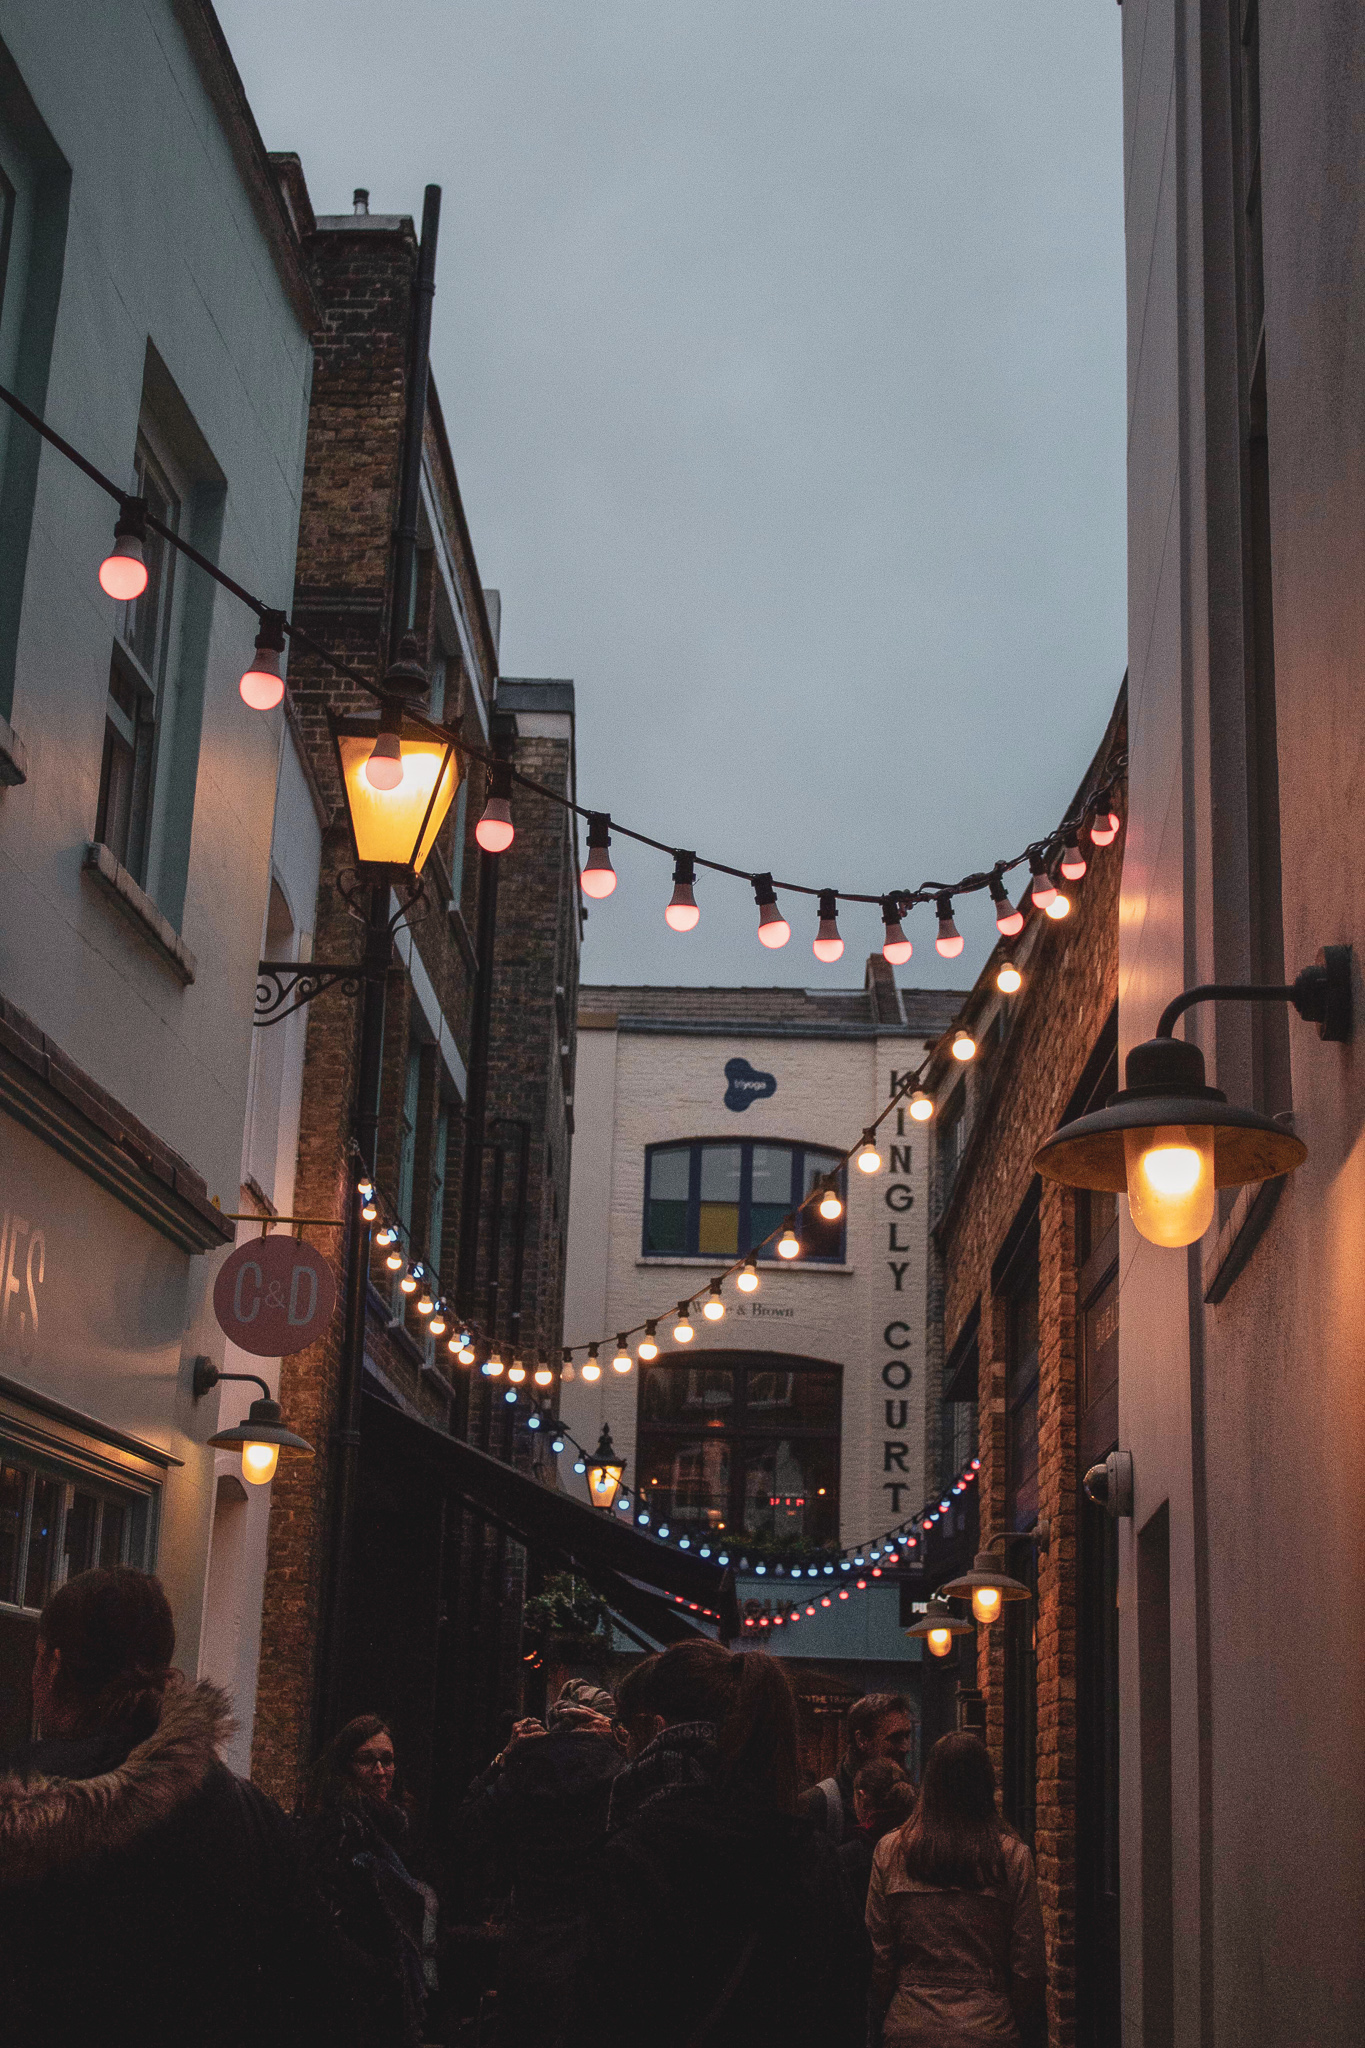 Kingly Court London with fairy lights and old style sreet lamps